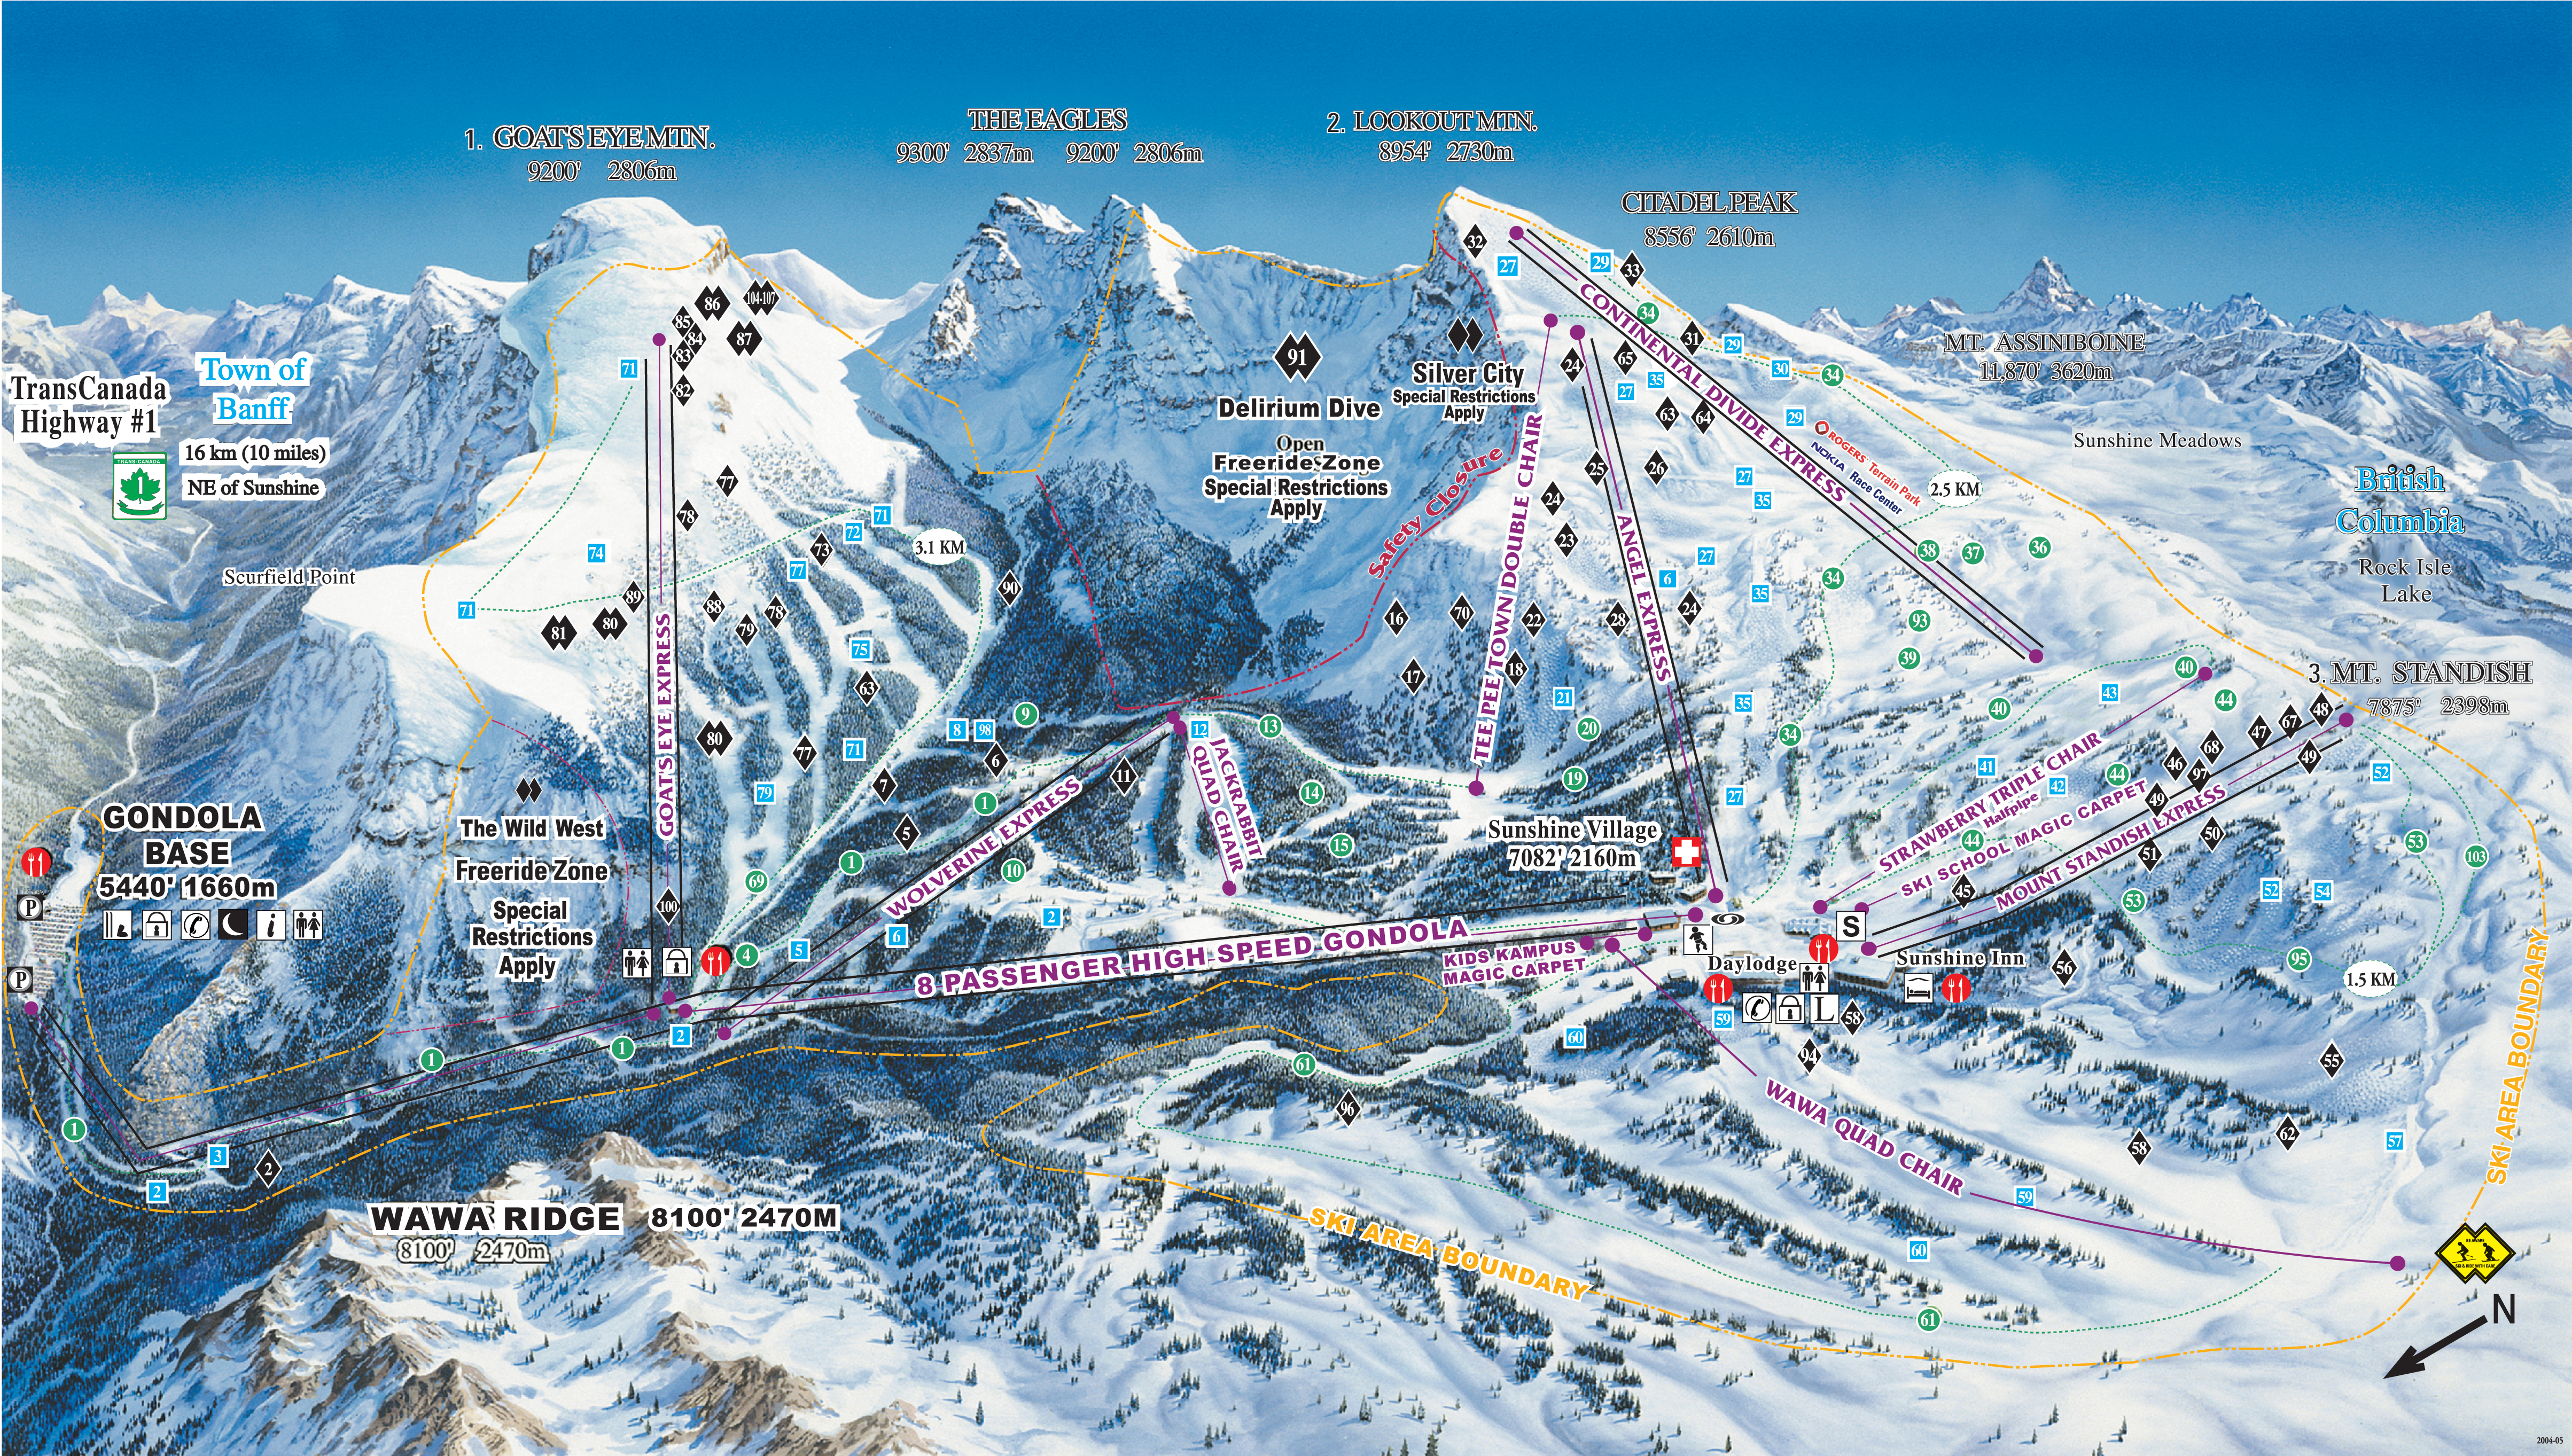 killington ski map with Pl 2 Dest Cabn  Param 0 0 5 on Pl 2 Dest CABN  param 0 0 5 together with Worldview 2 Hurricane Irene furthermore Taos Ski Valley Sells Billionaire Conservationist also Resort Maps furthermore Killington Ski Resort Guide Goods.